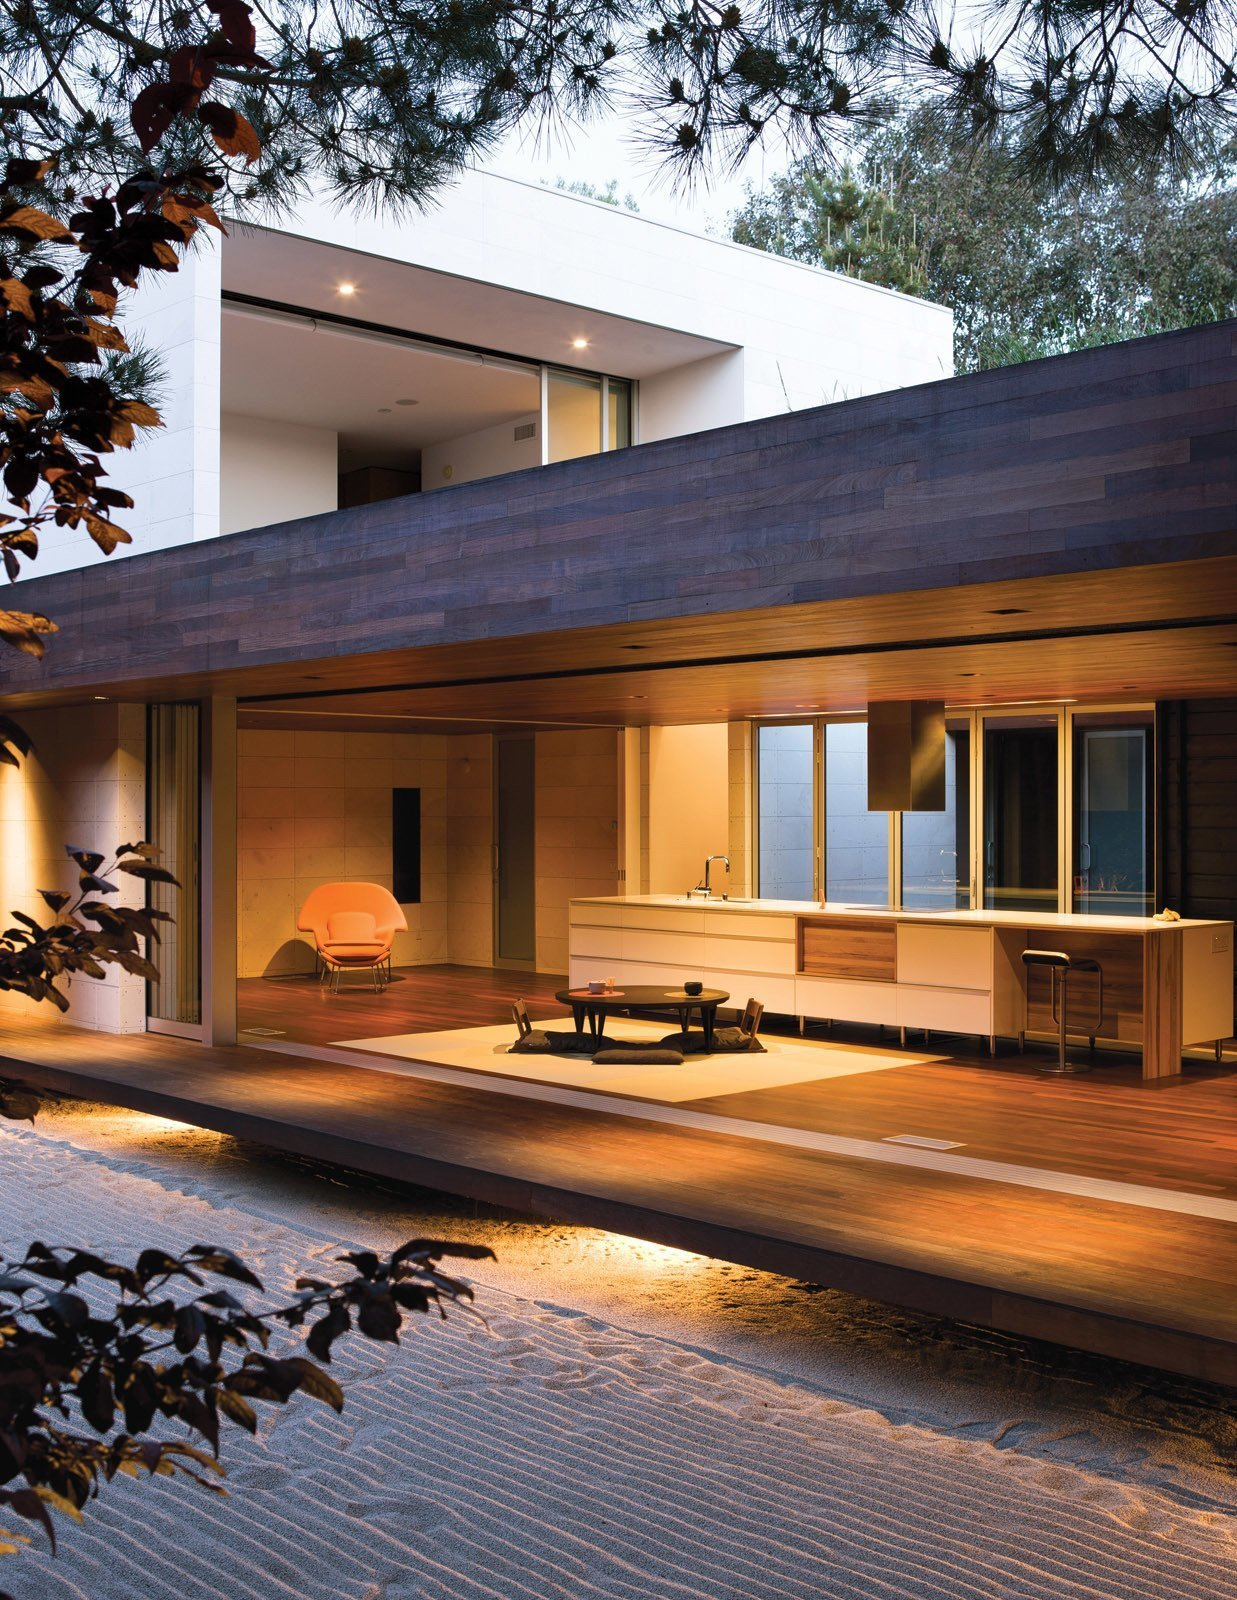 This Southern Californian home by architect Sebastian Mariscal has a wabi-sabi spirit, and is built with shou sugi ban timber, has a koi pond, wand a protective overhang, and a tertiary space known in in traditional Japanese homes as the